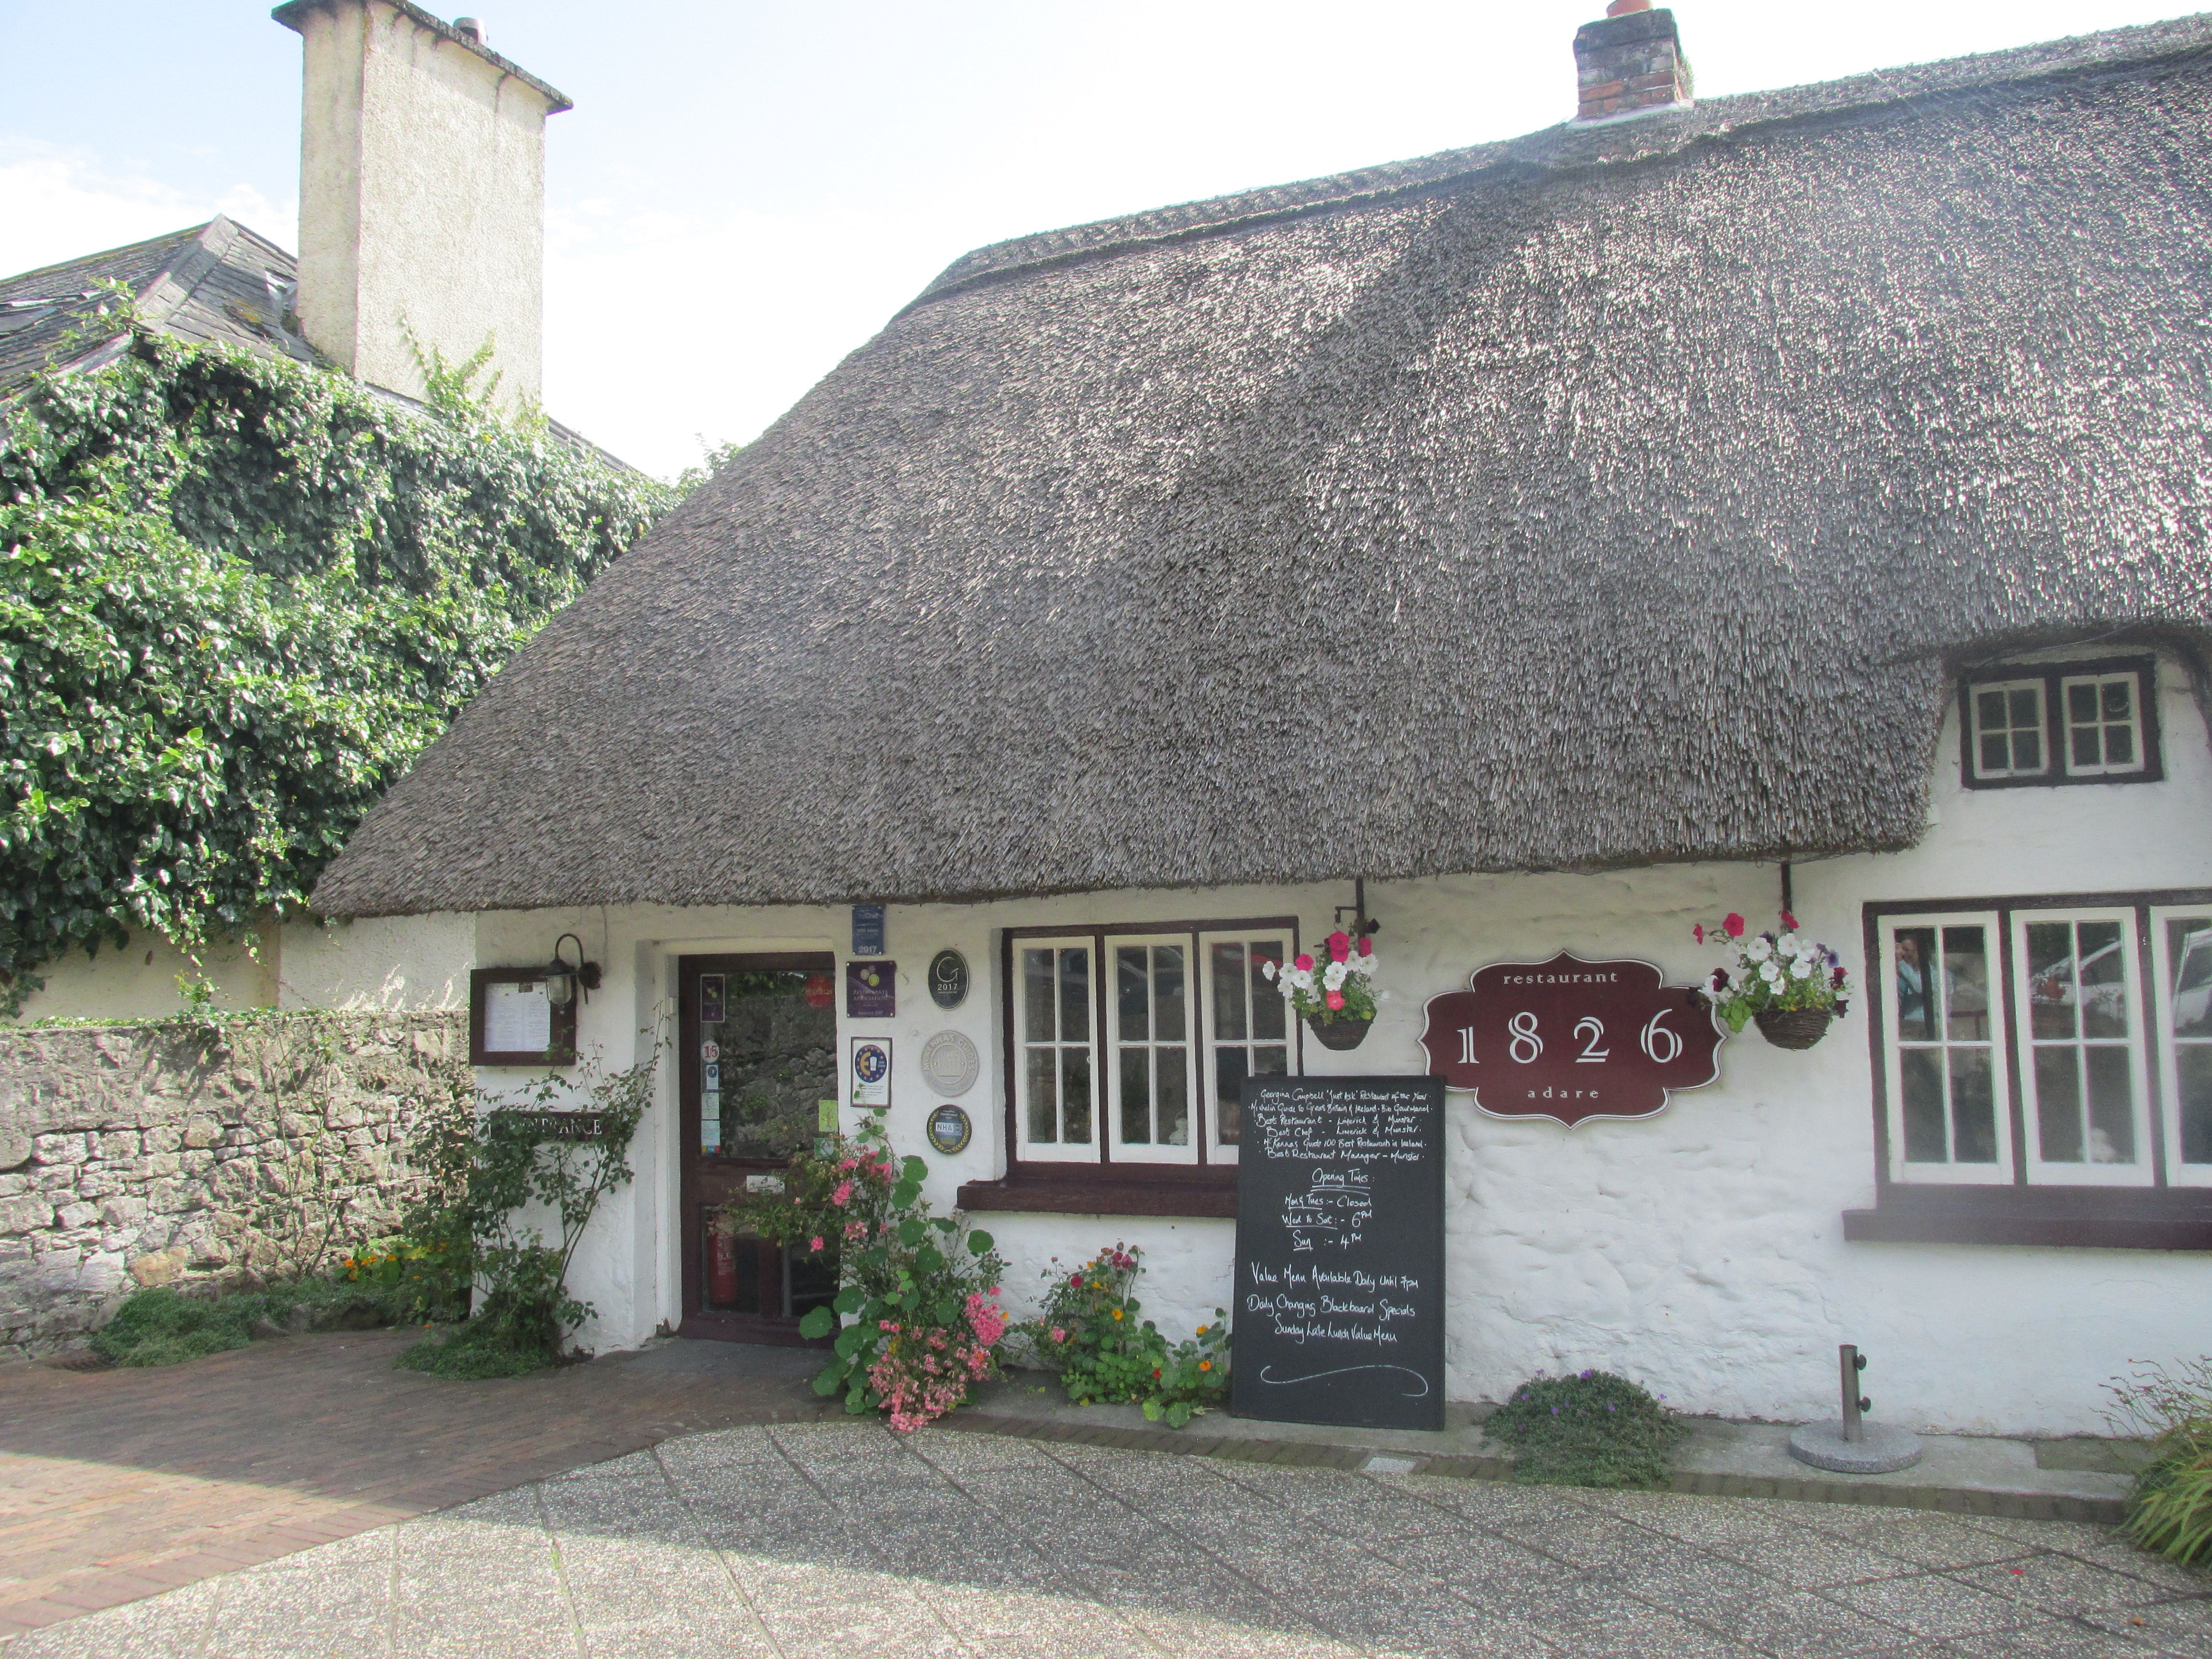 Thatch Cottage In Adare County Limerick Ireland From Www Allthingsnice4life Blogspot Com Irish Cottage Thatched Cottage